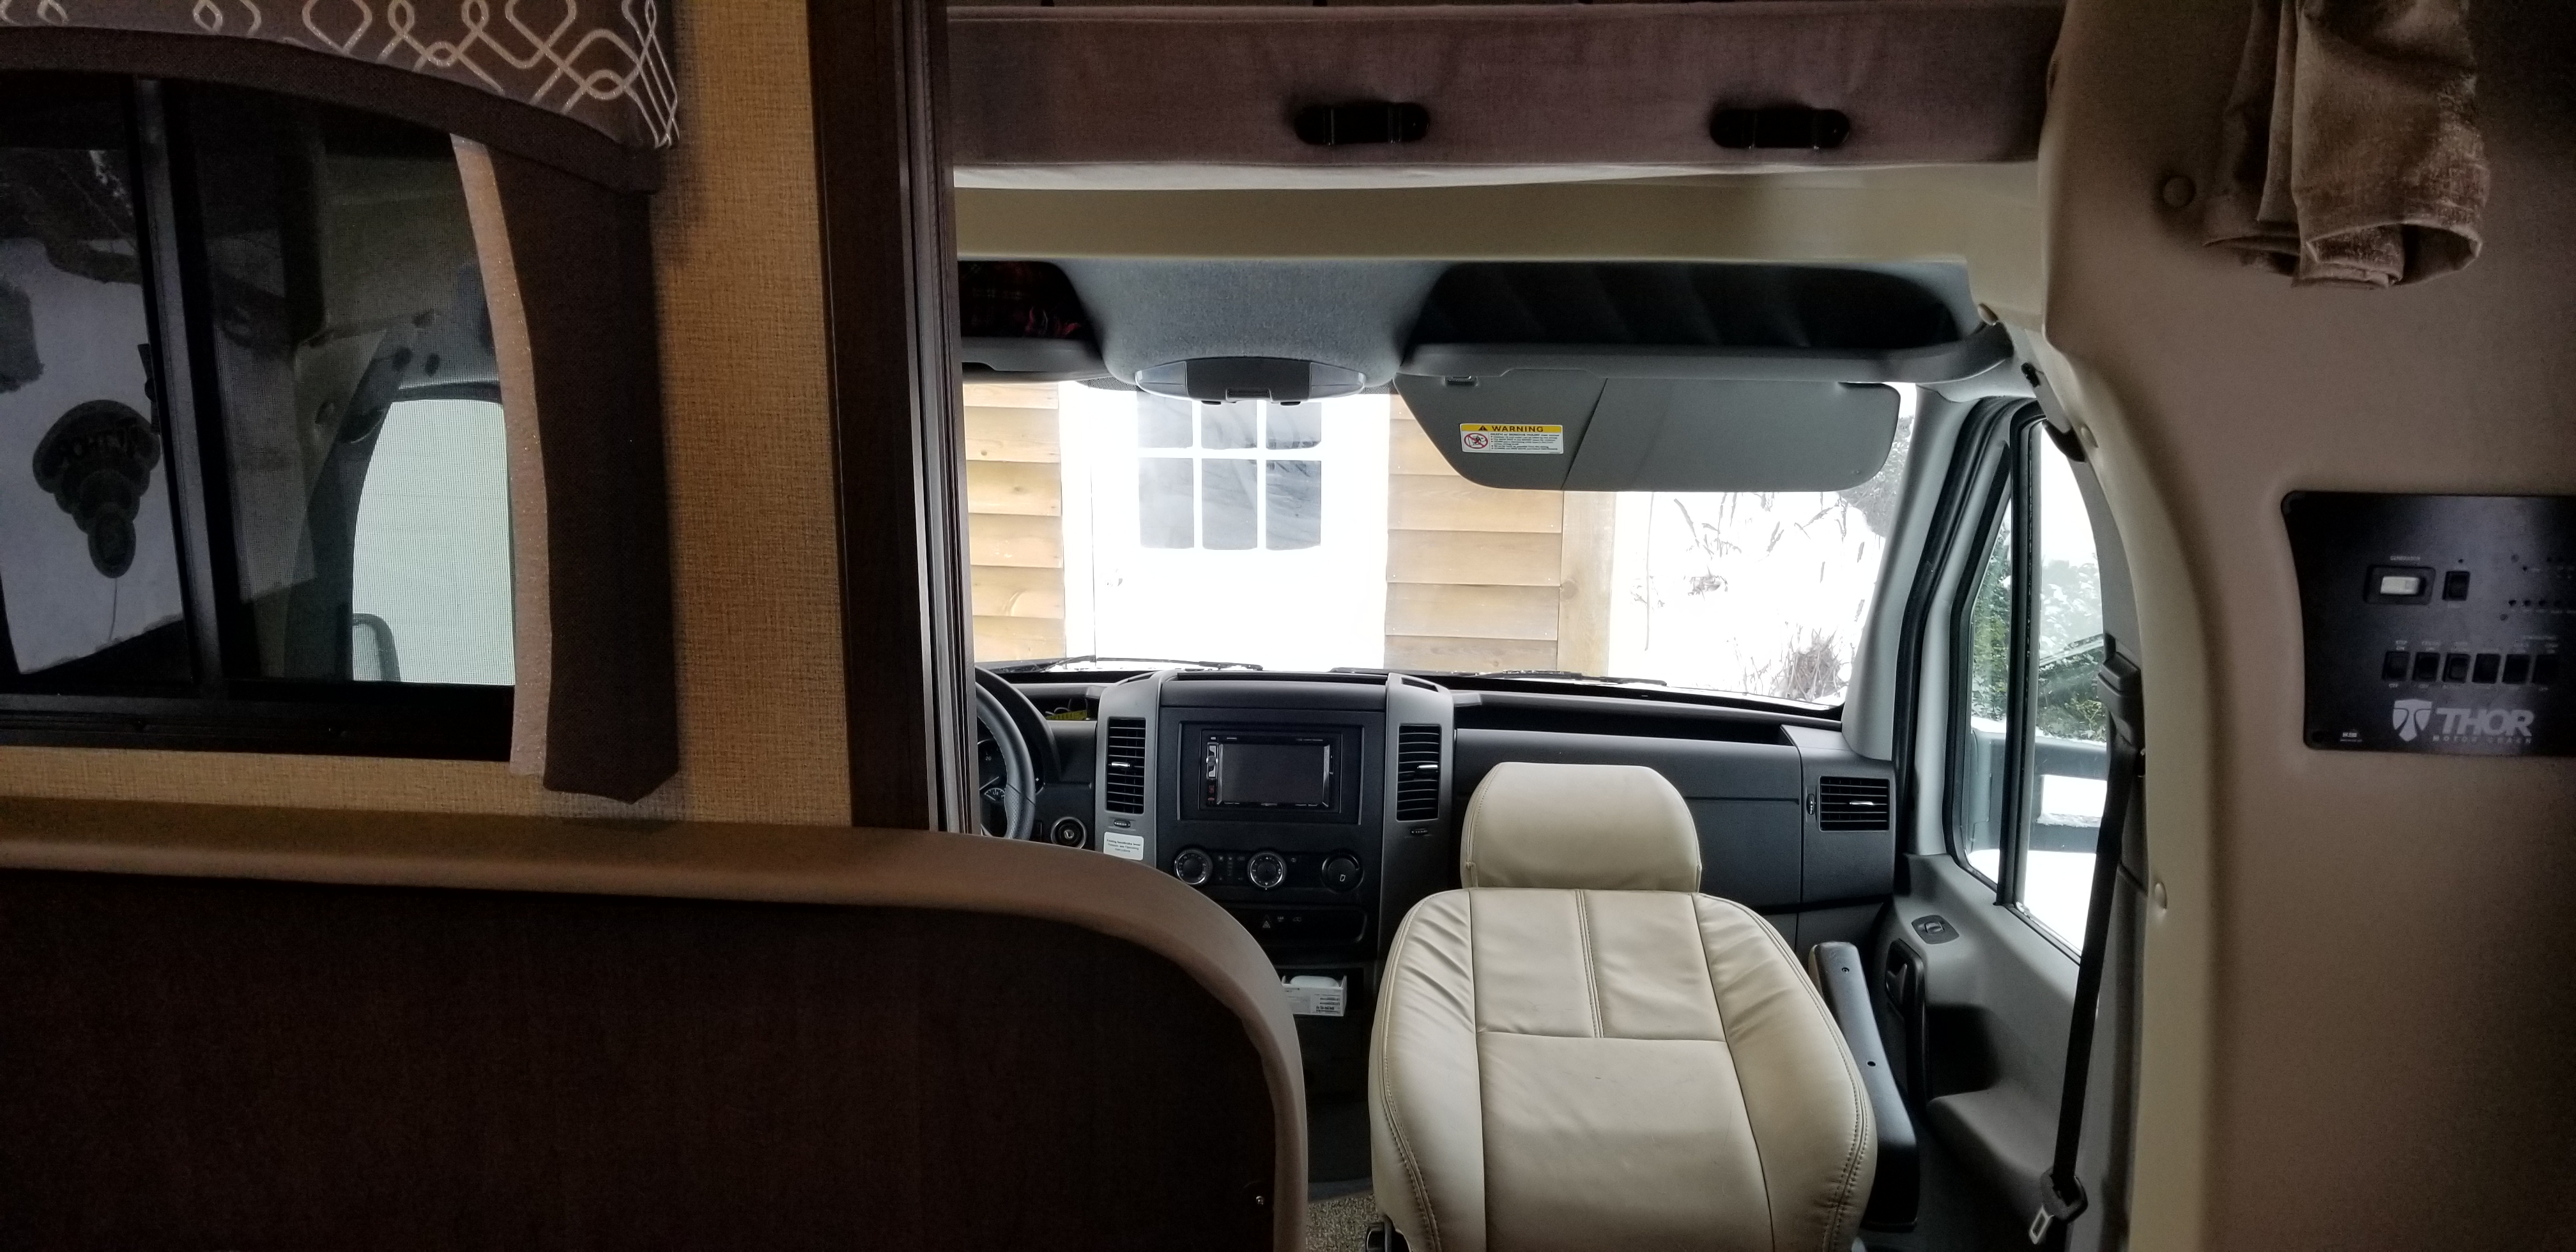 Interior Front Seats (w/swivel capability). Mercedes Diesel Turbo Sprinter Chassis Thor Chateau Motor Coach 2019